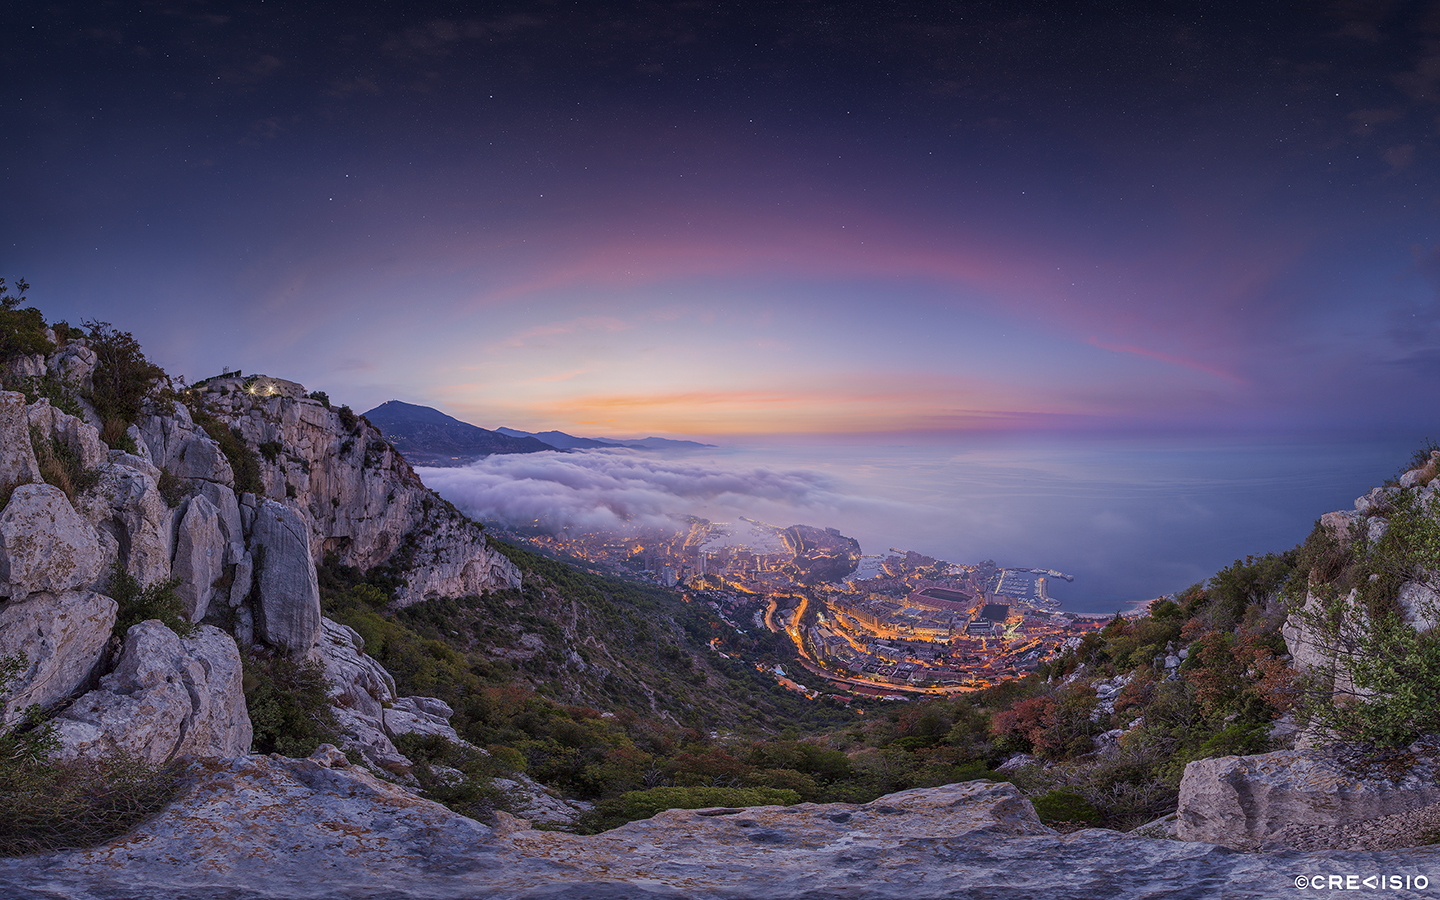 Monaco Fog Sunrise by Crevisio